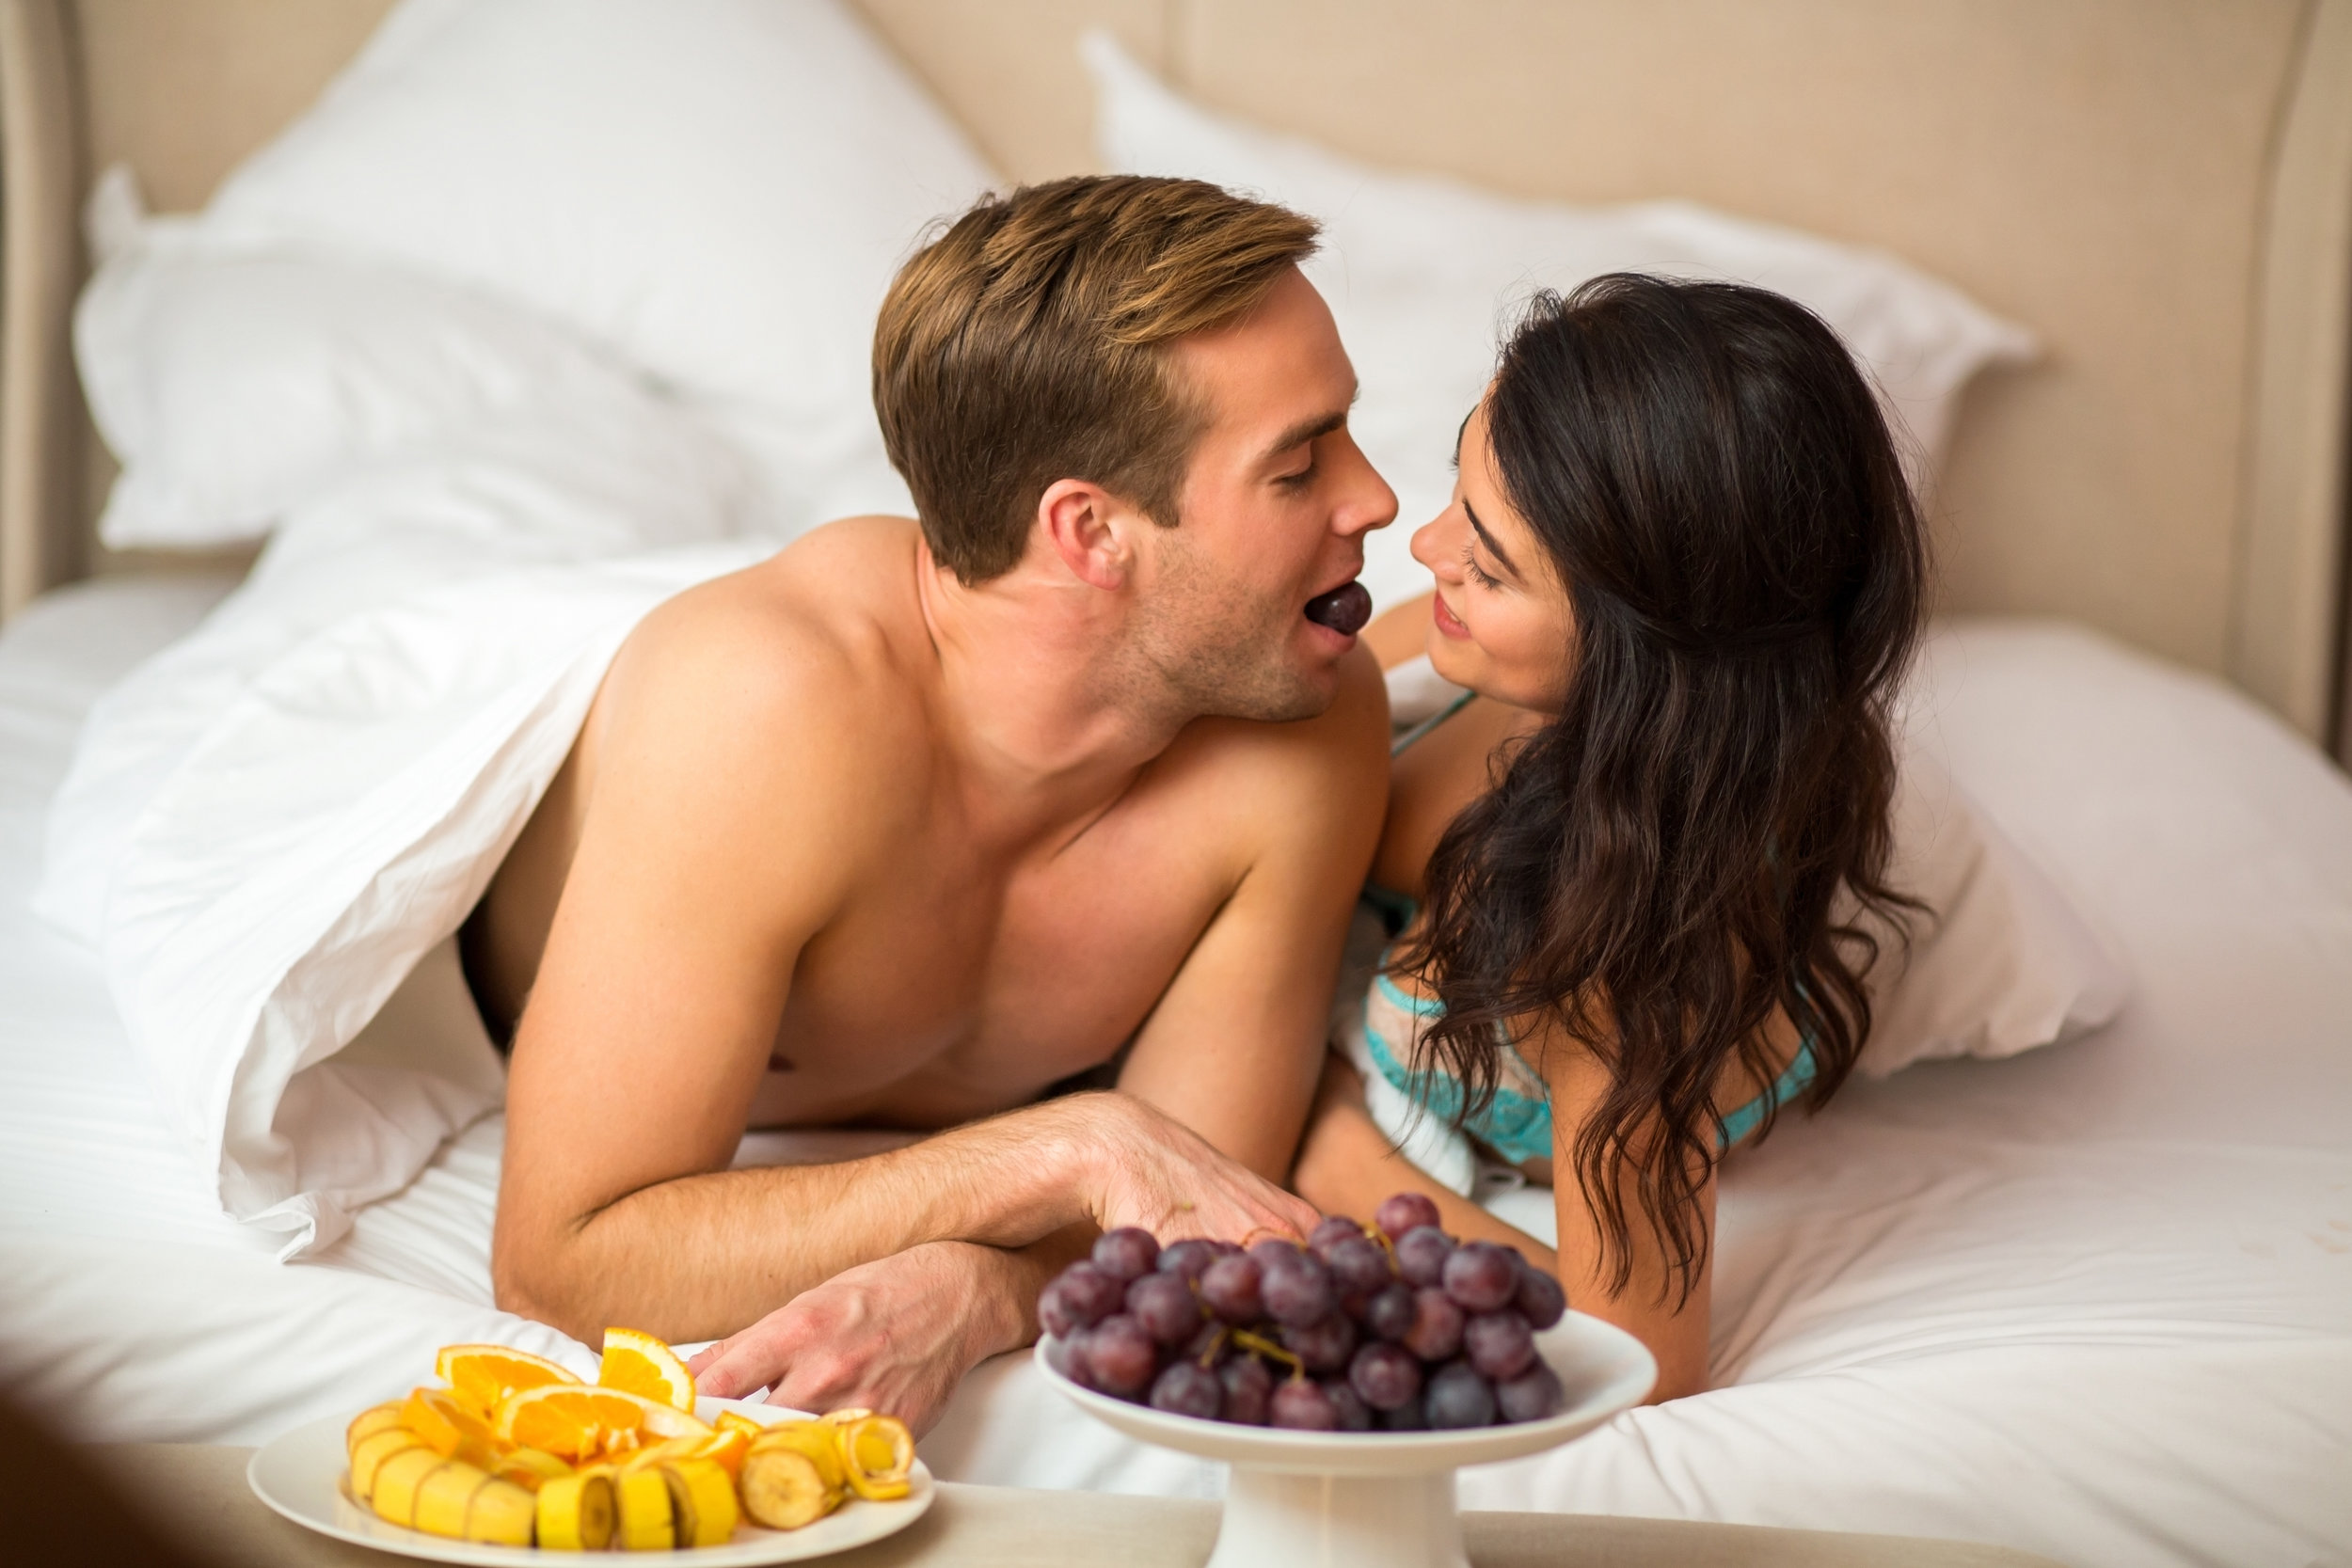 COUPLE FEEDING EACHOTHER FRUIT IN BED.jpeg